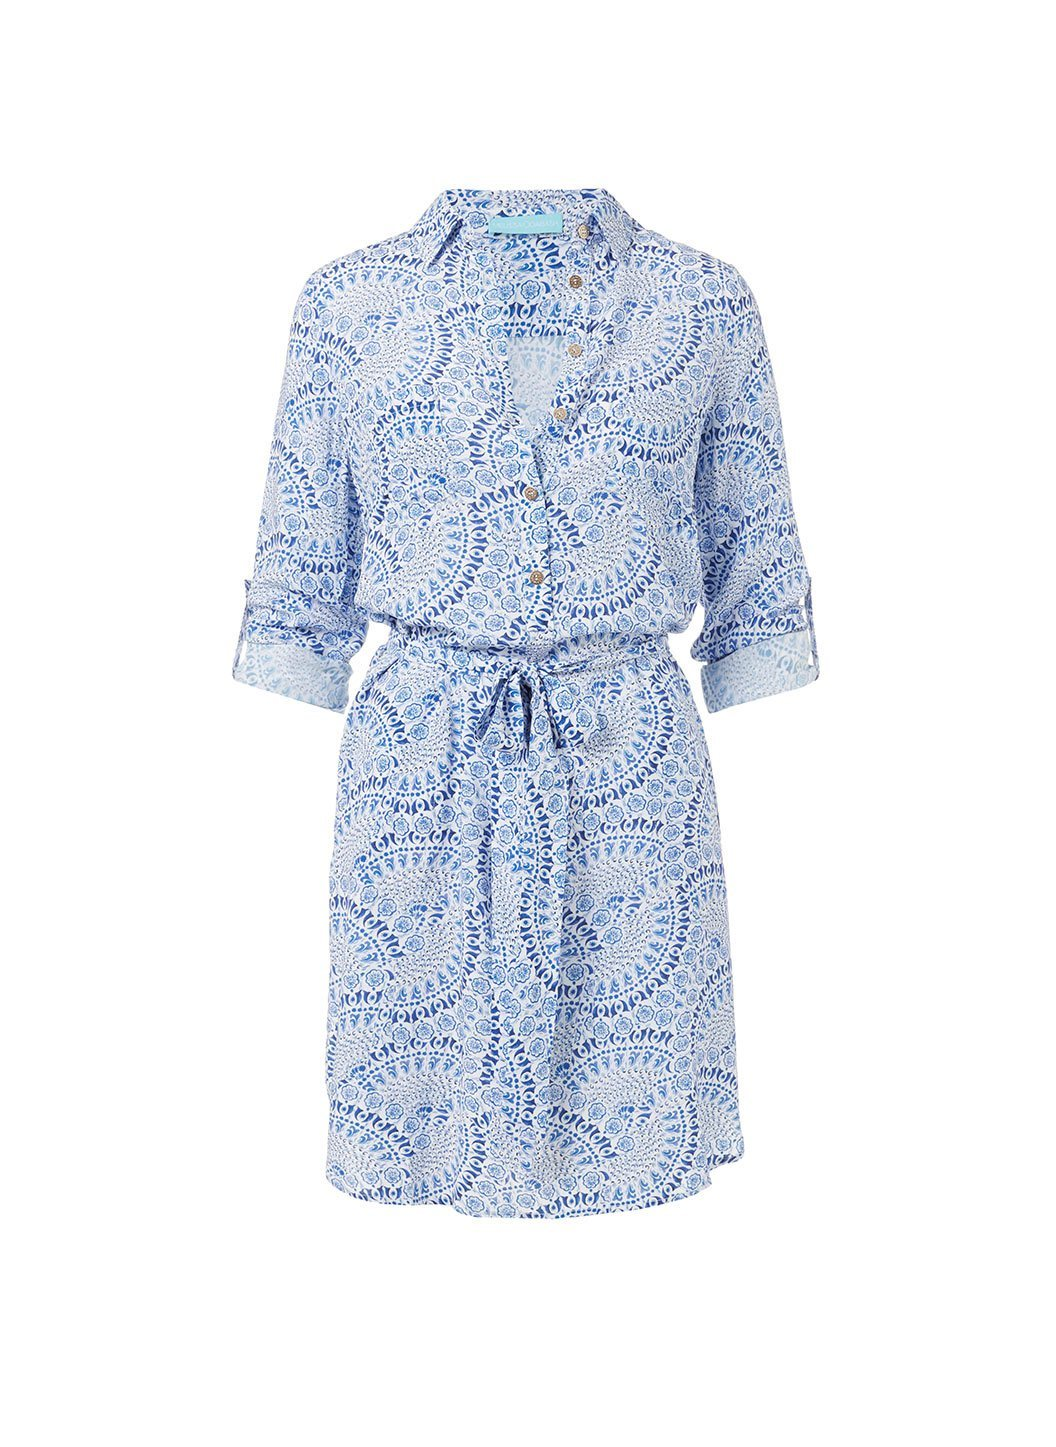 lois capri button down belted shirt dress 2019